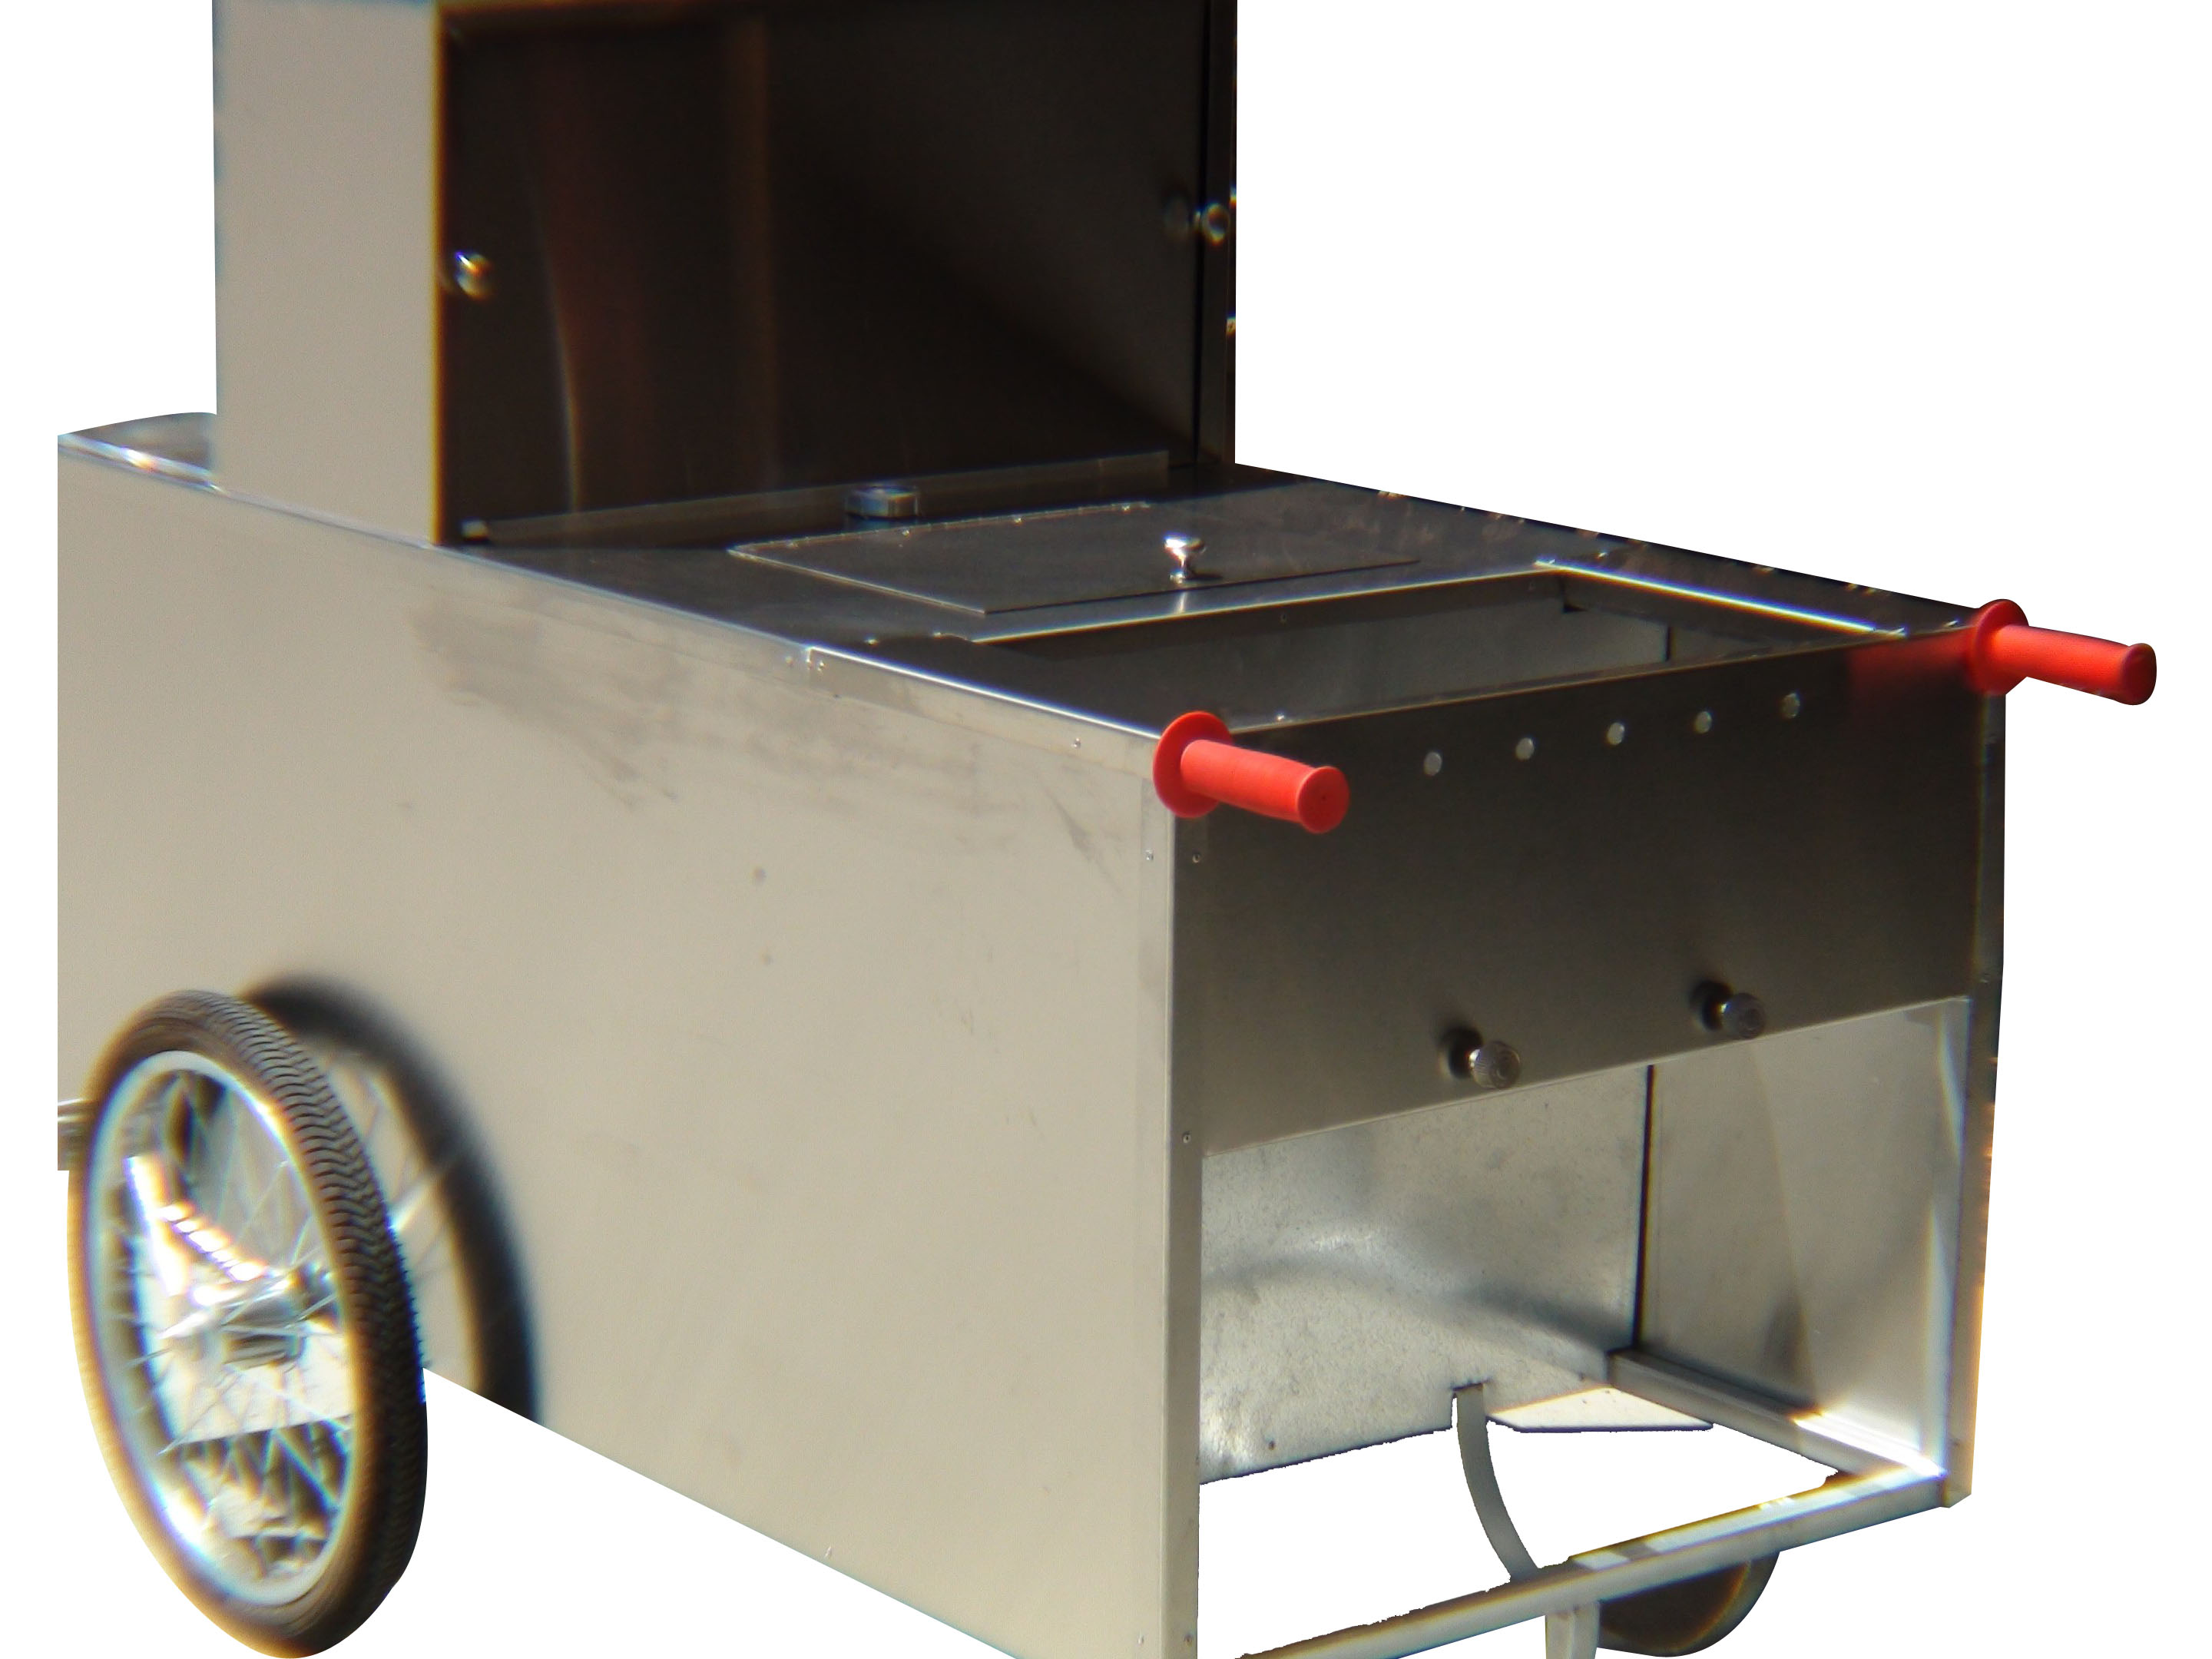 Hot Dog Carts For Sale - Lil' Dog Hot Dog Stands from Bens ...